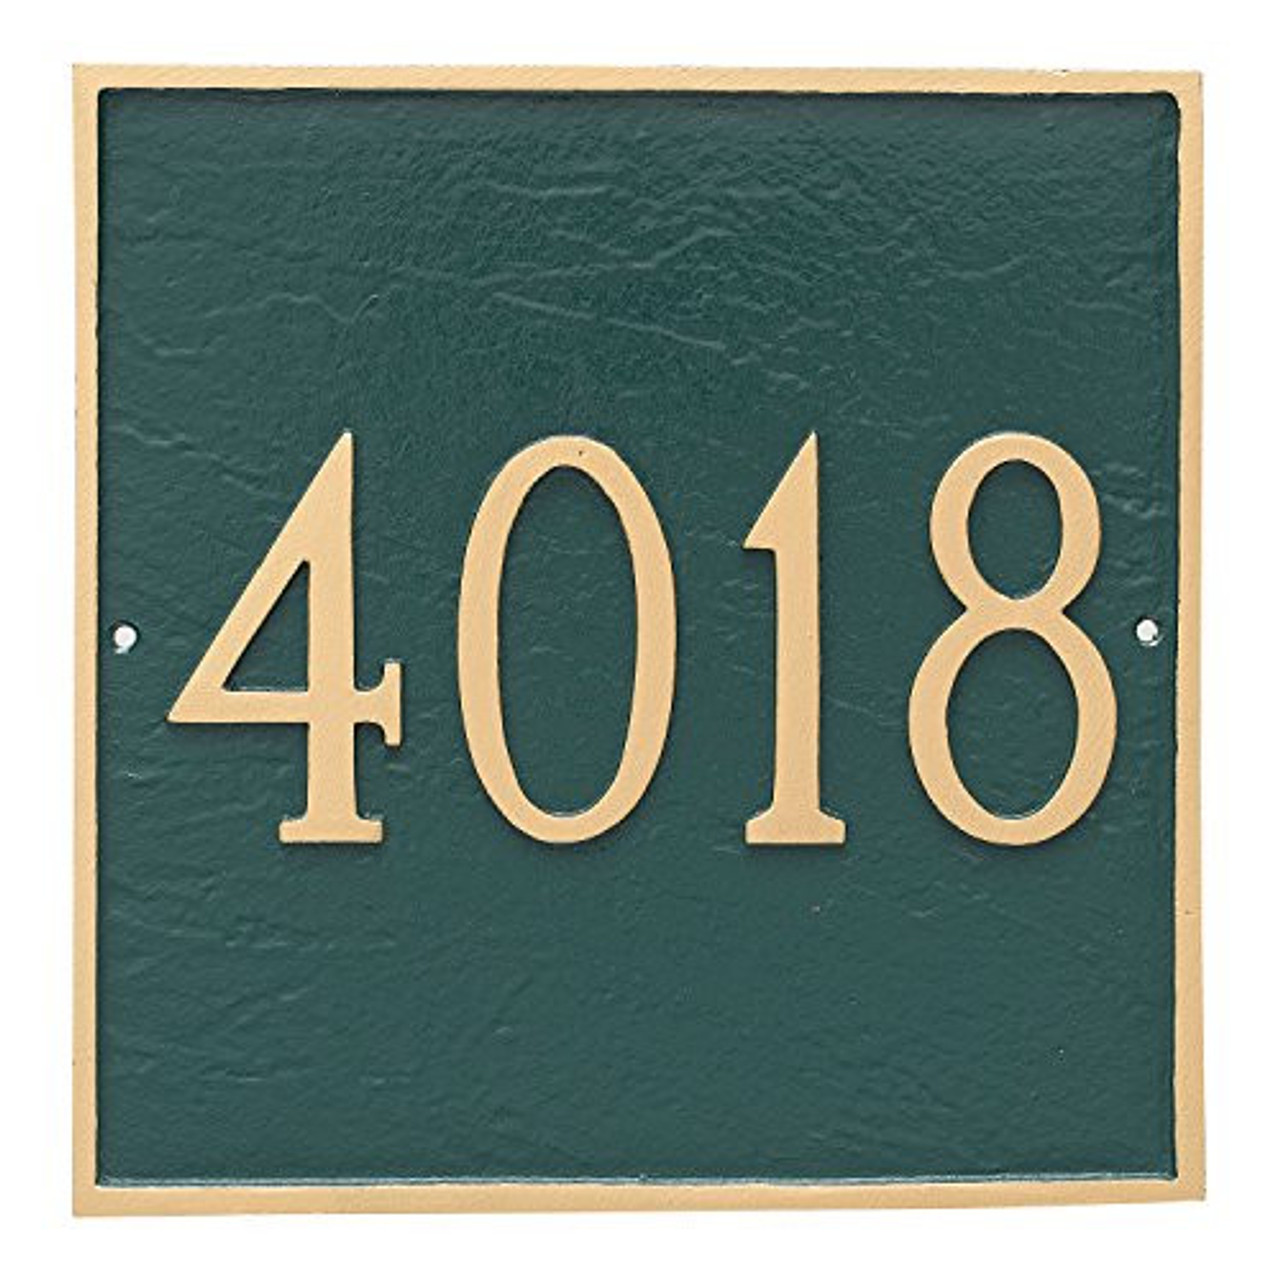 Large Address House Number Plaque. Shown displaying Large House Numbers only for maximum visibility from a distance- Color combination here is Hunter Green/Gold